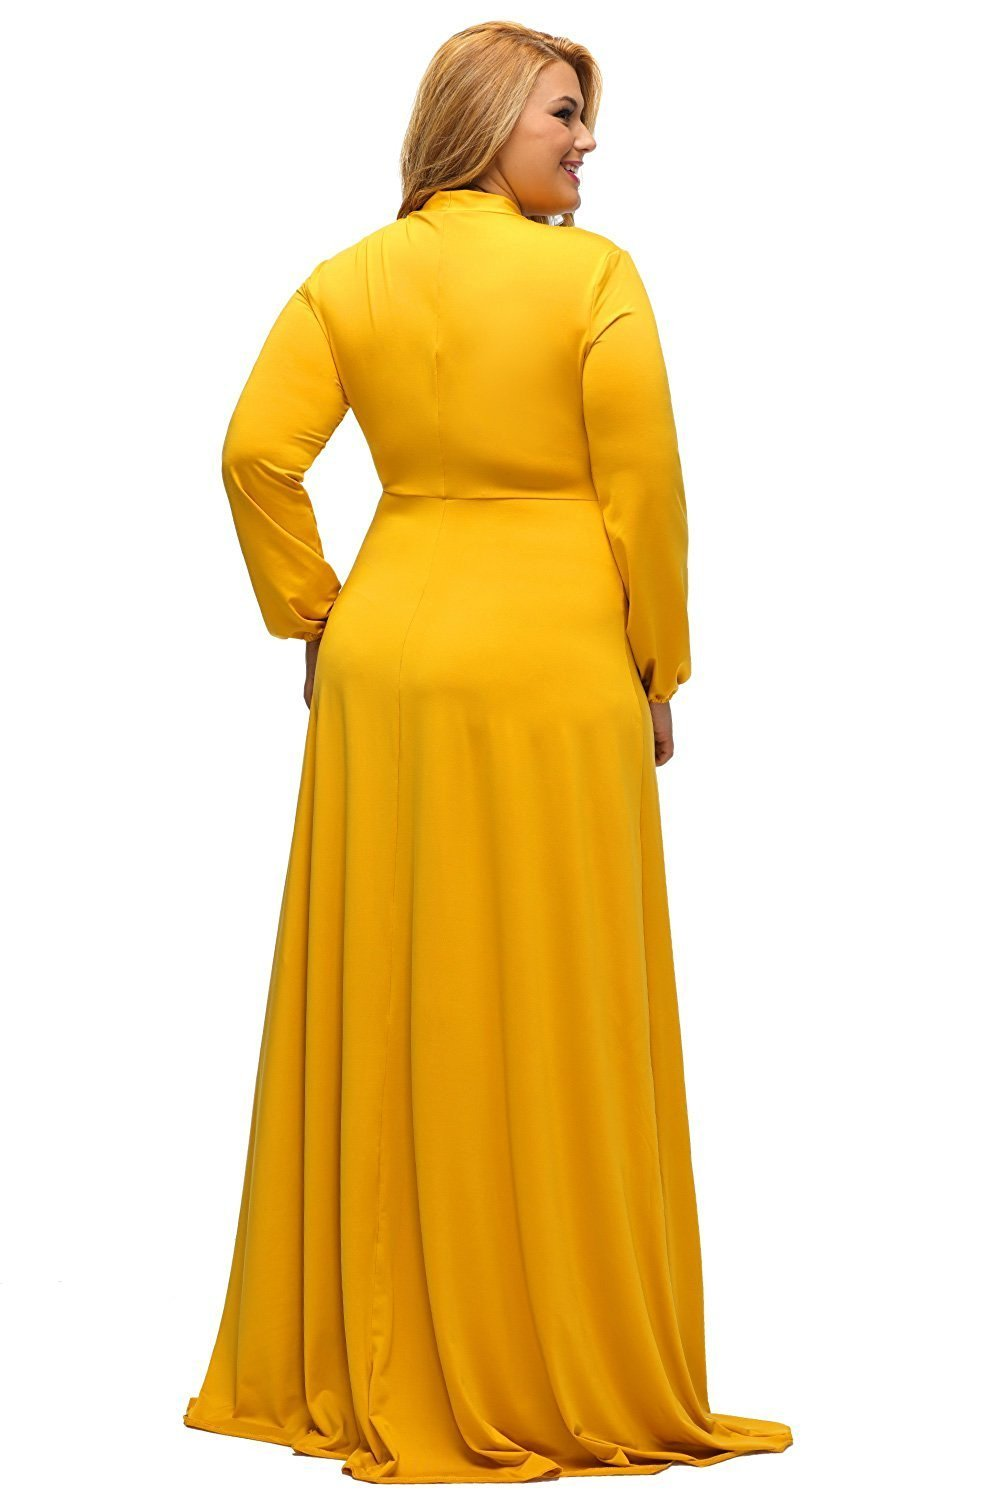 Yellow Maxi Dress with Sleeves Plus Size